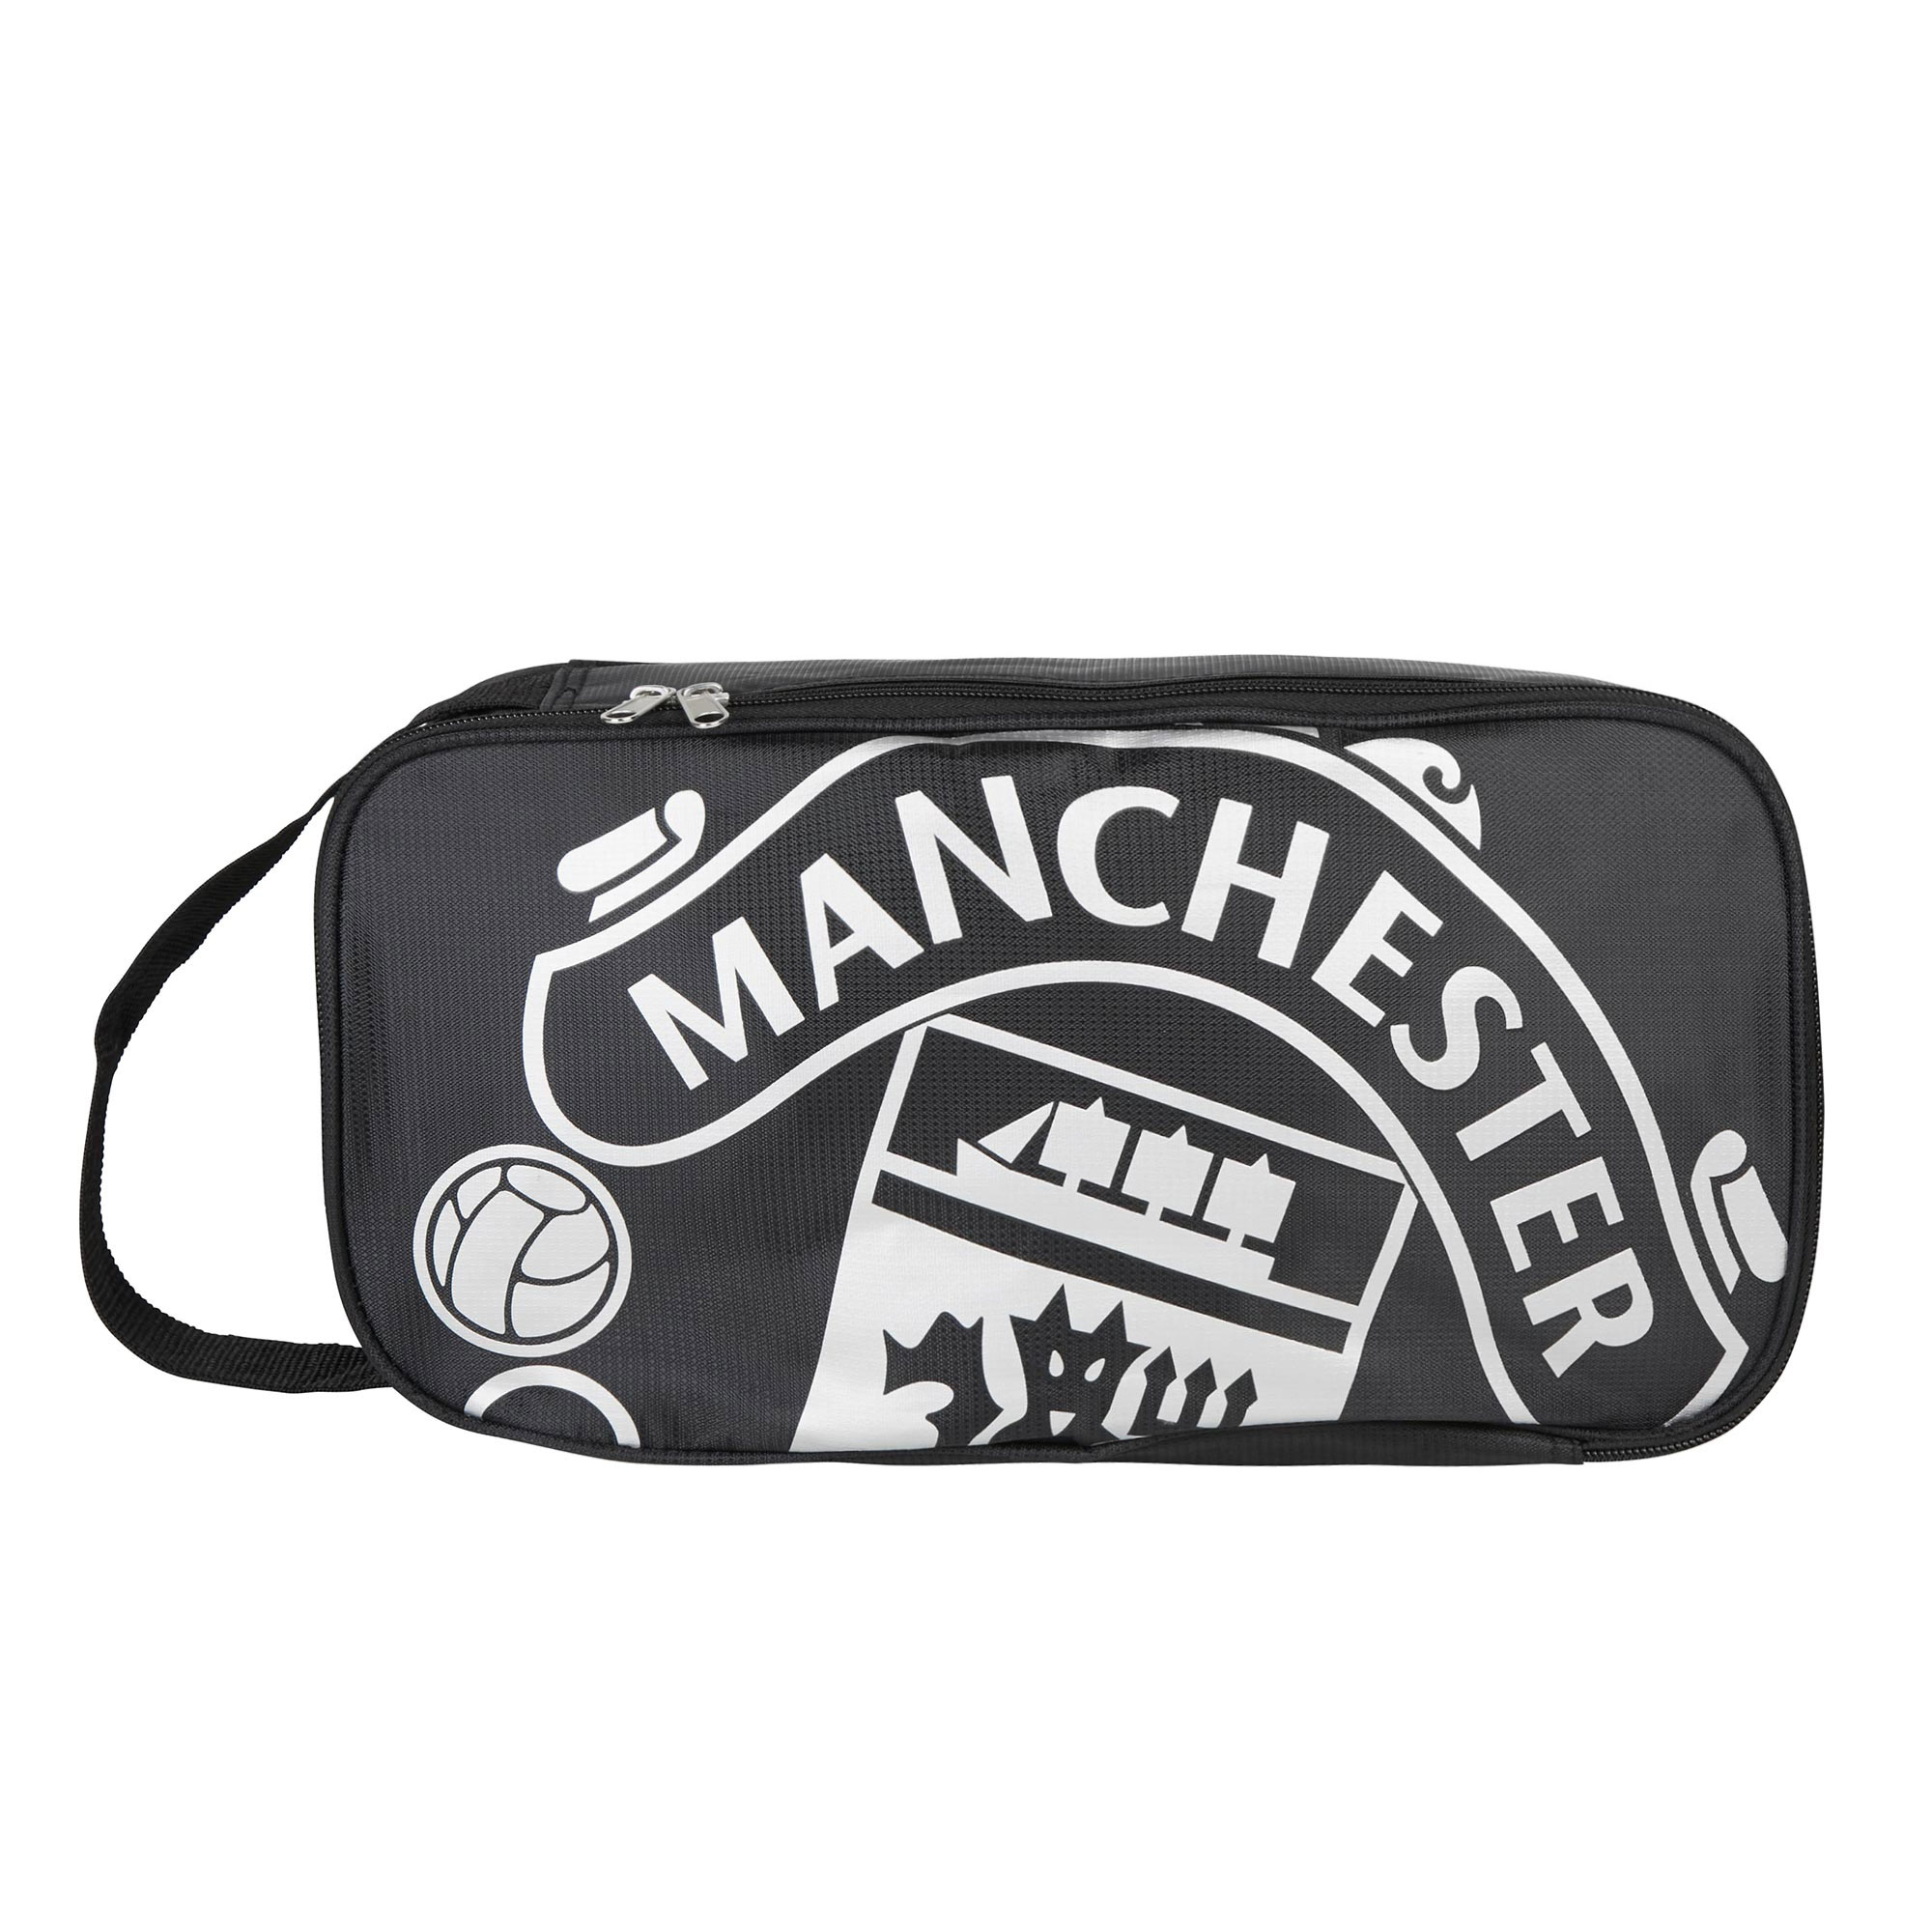 Sac à chaussures Manchester United